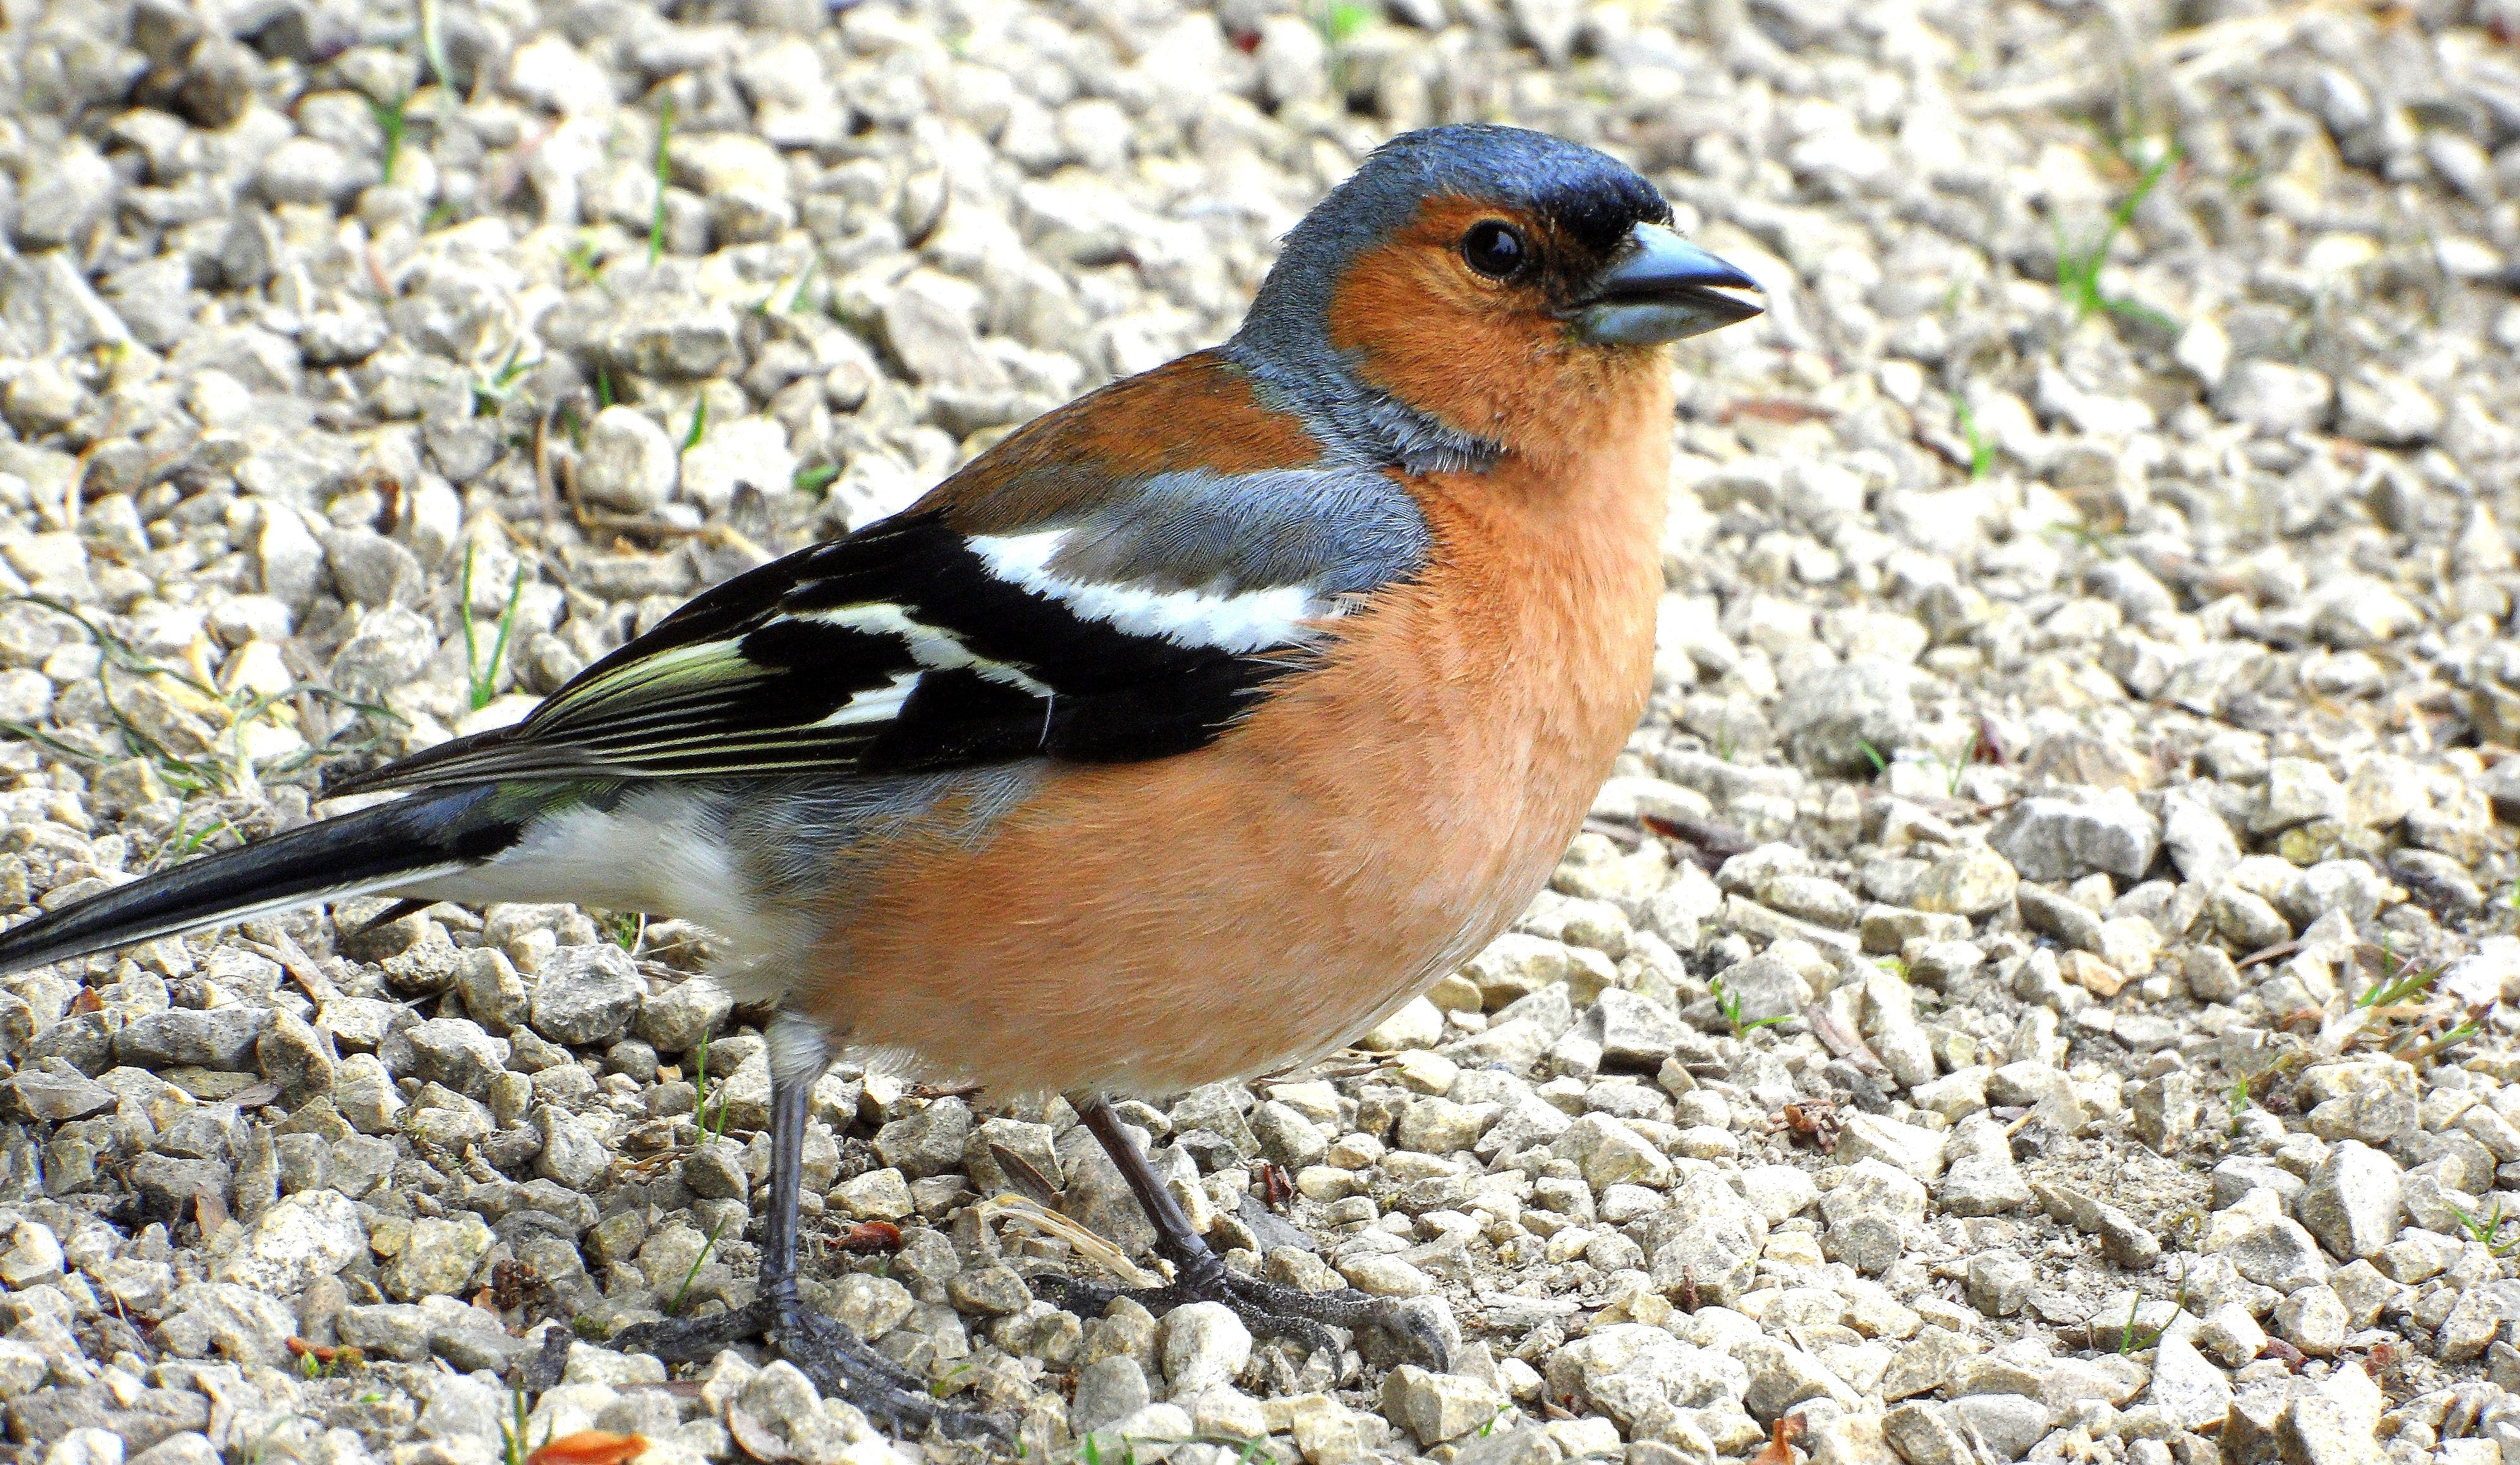 Chaffinch image by Linda Mcguire on CHAFFINCH * * Us images